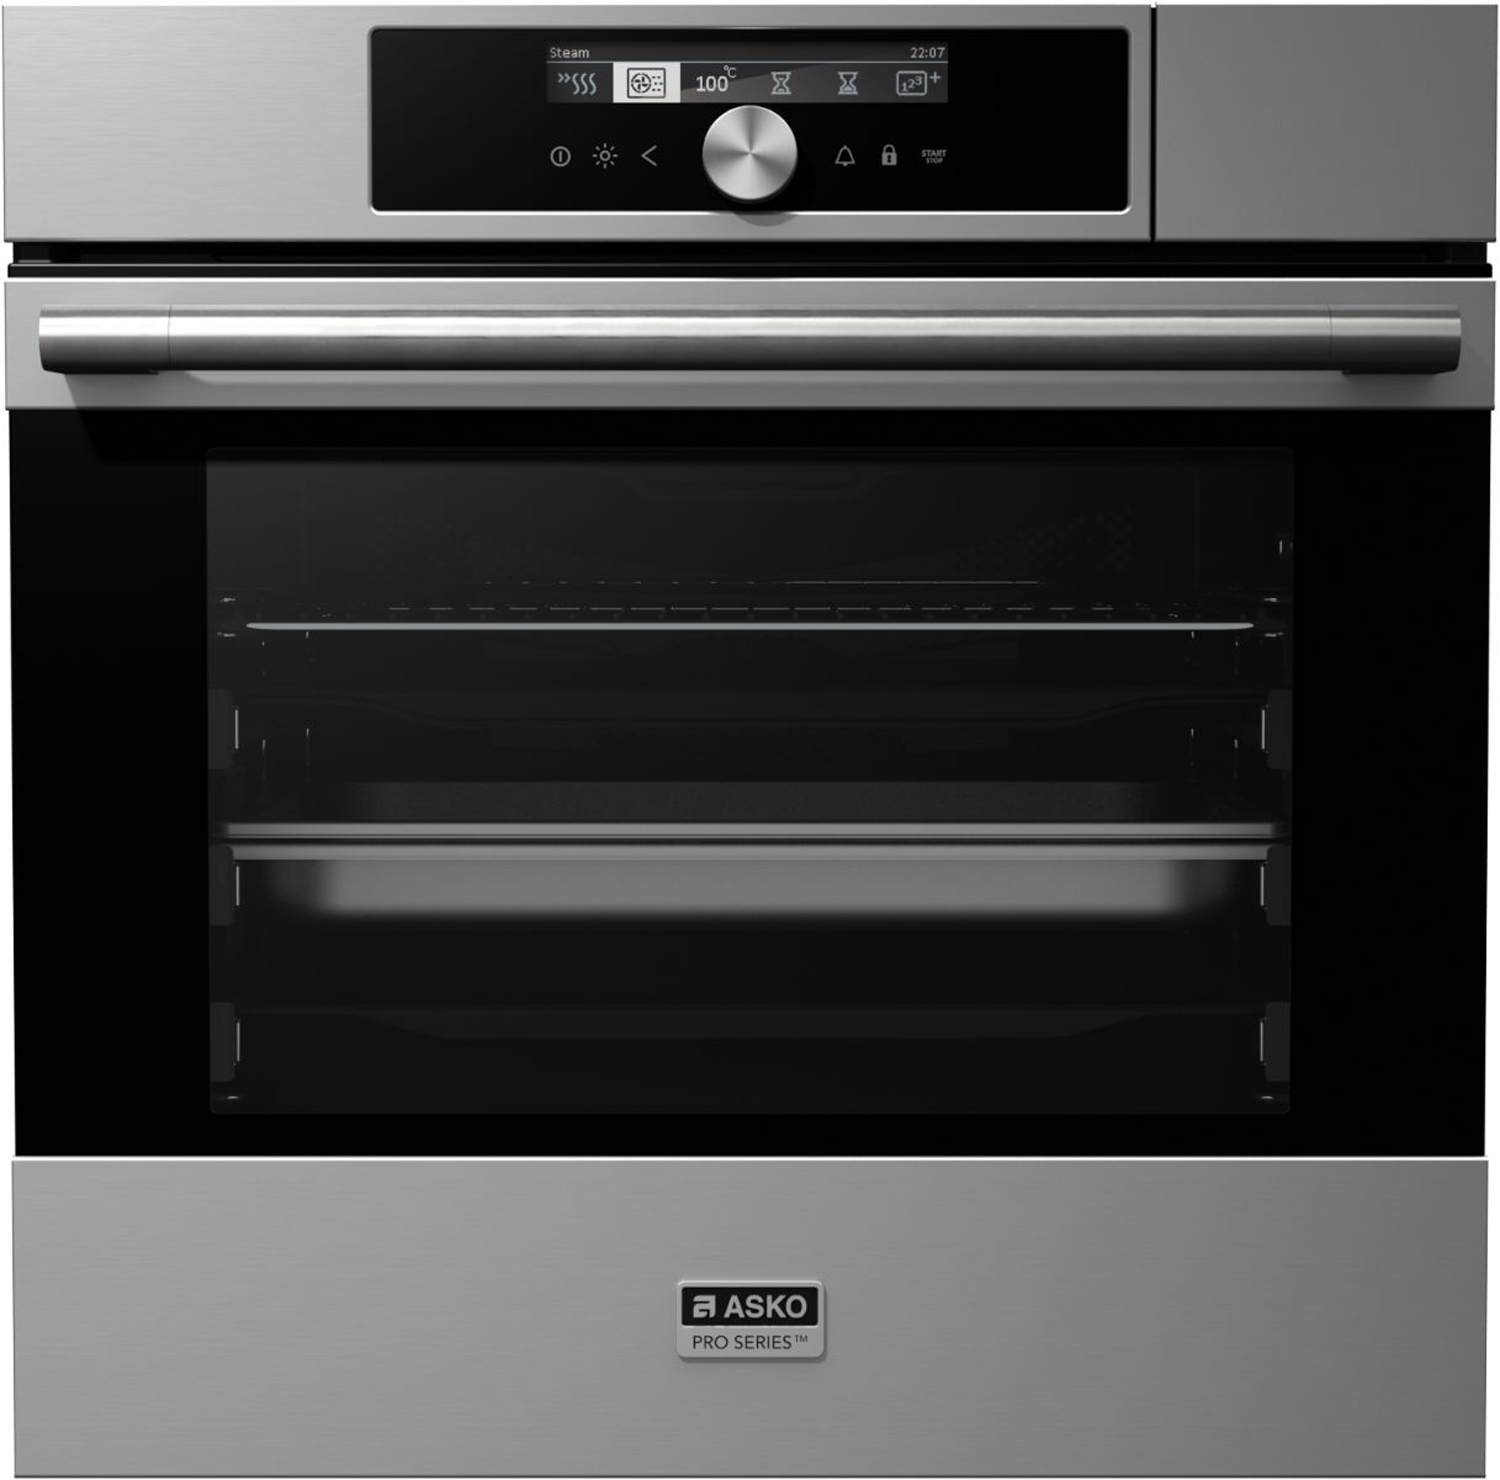 Stylish steam assist ovens